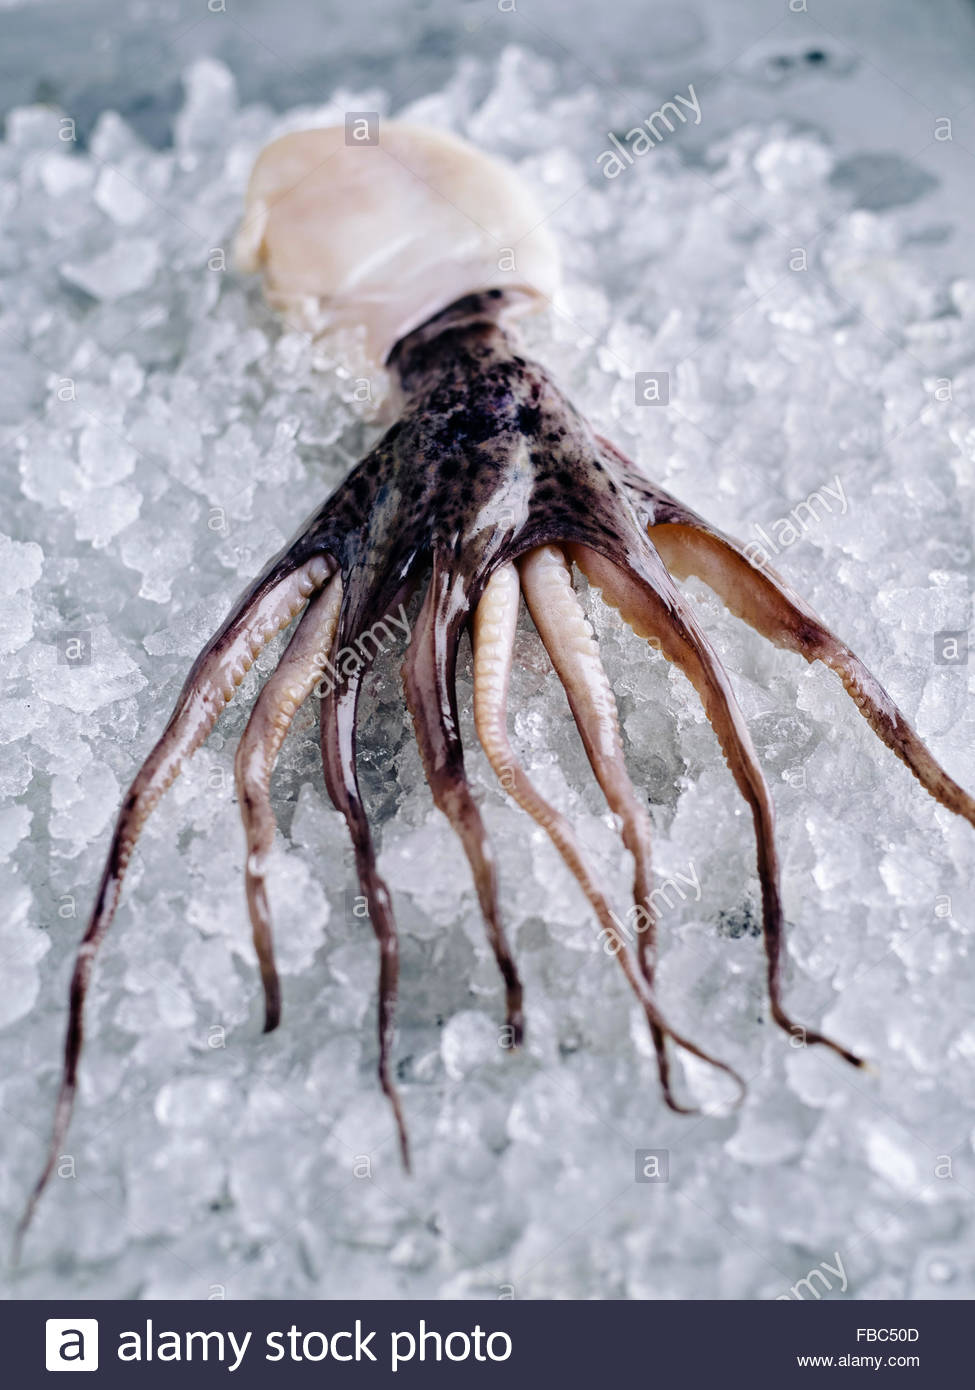 A small whole octopus on ice on rustic metal surface - Stock Image